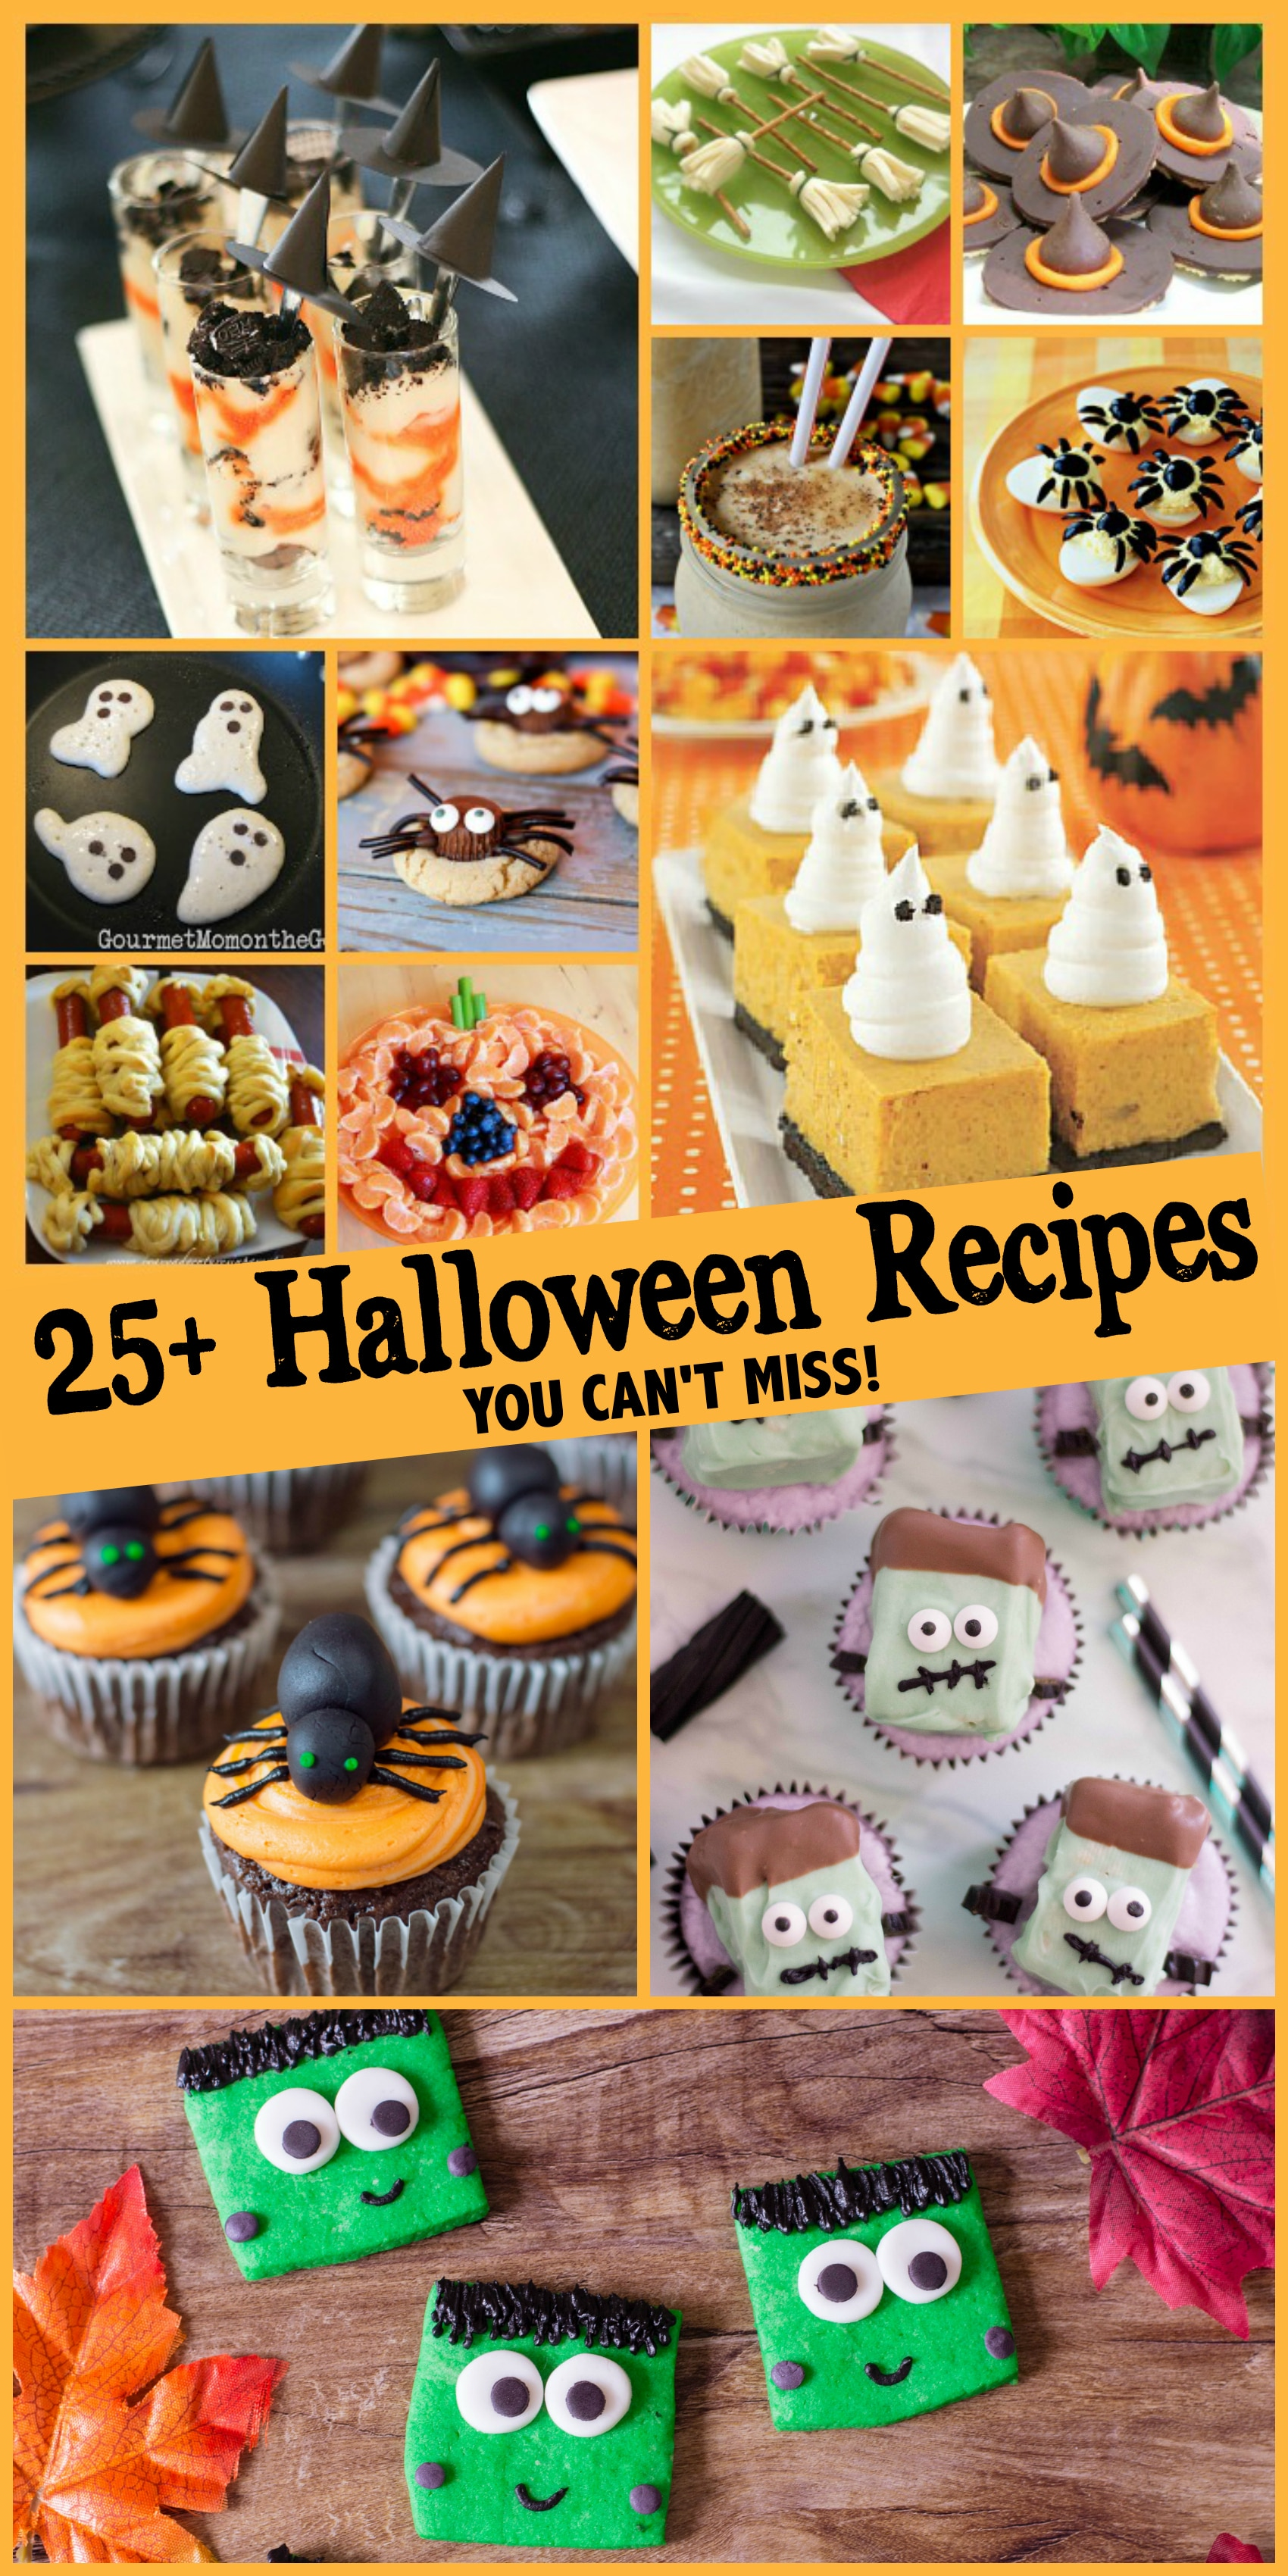 25+ Halloween Recipes You Can't Miss